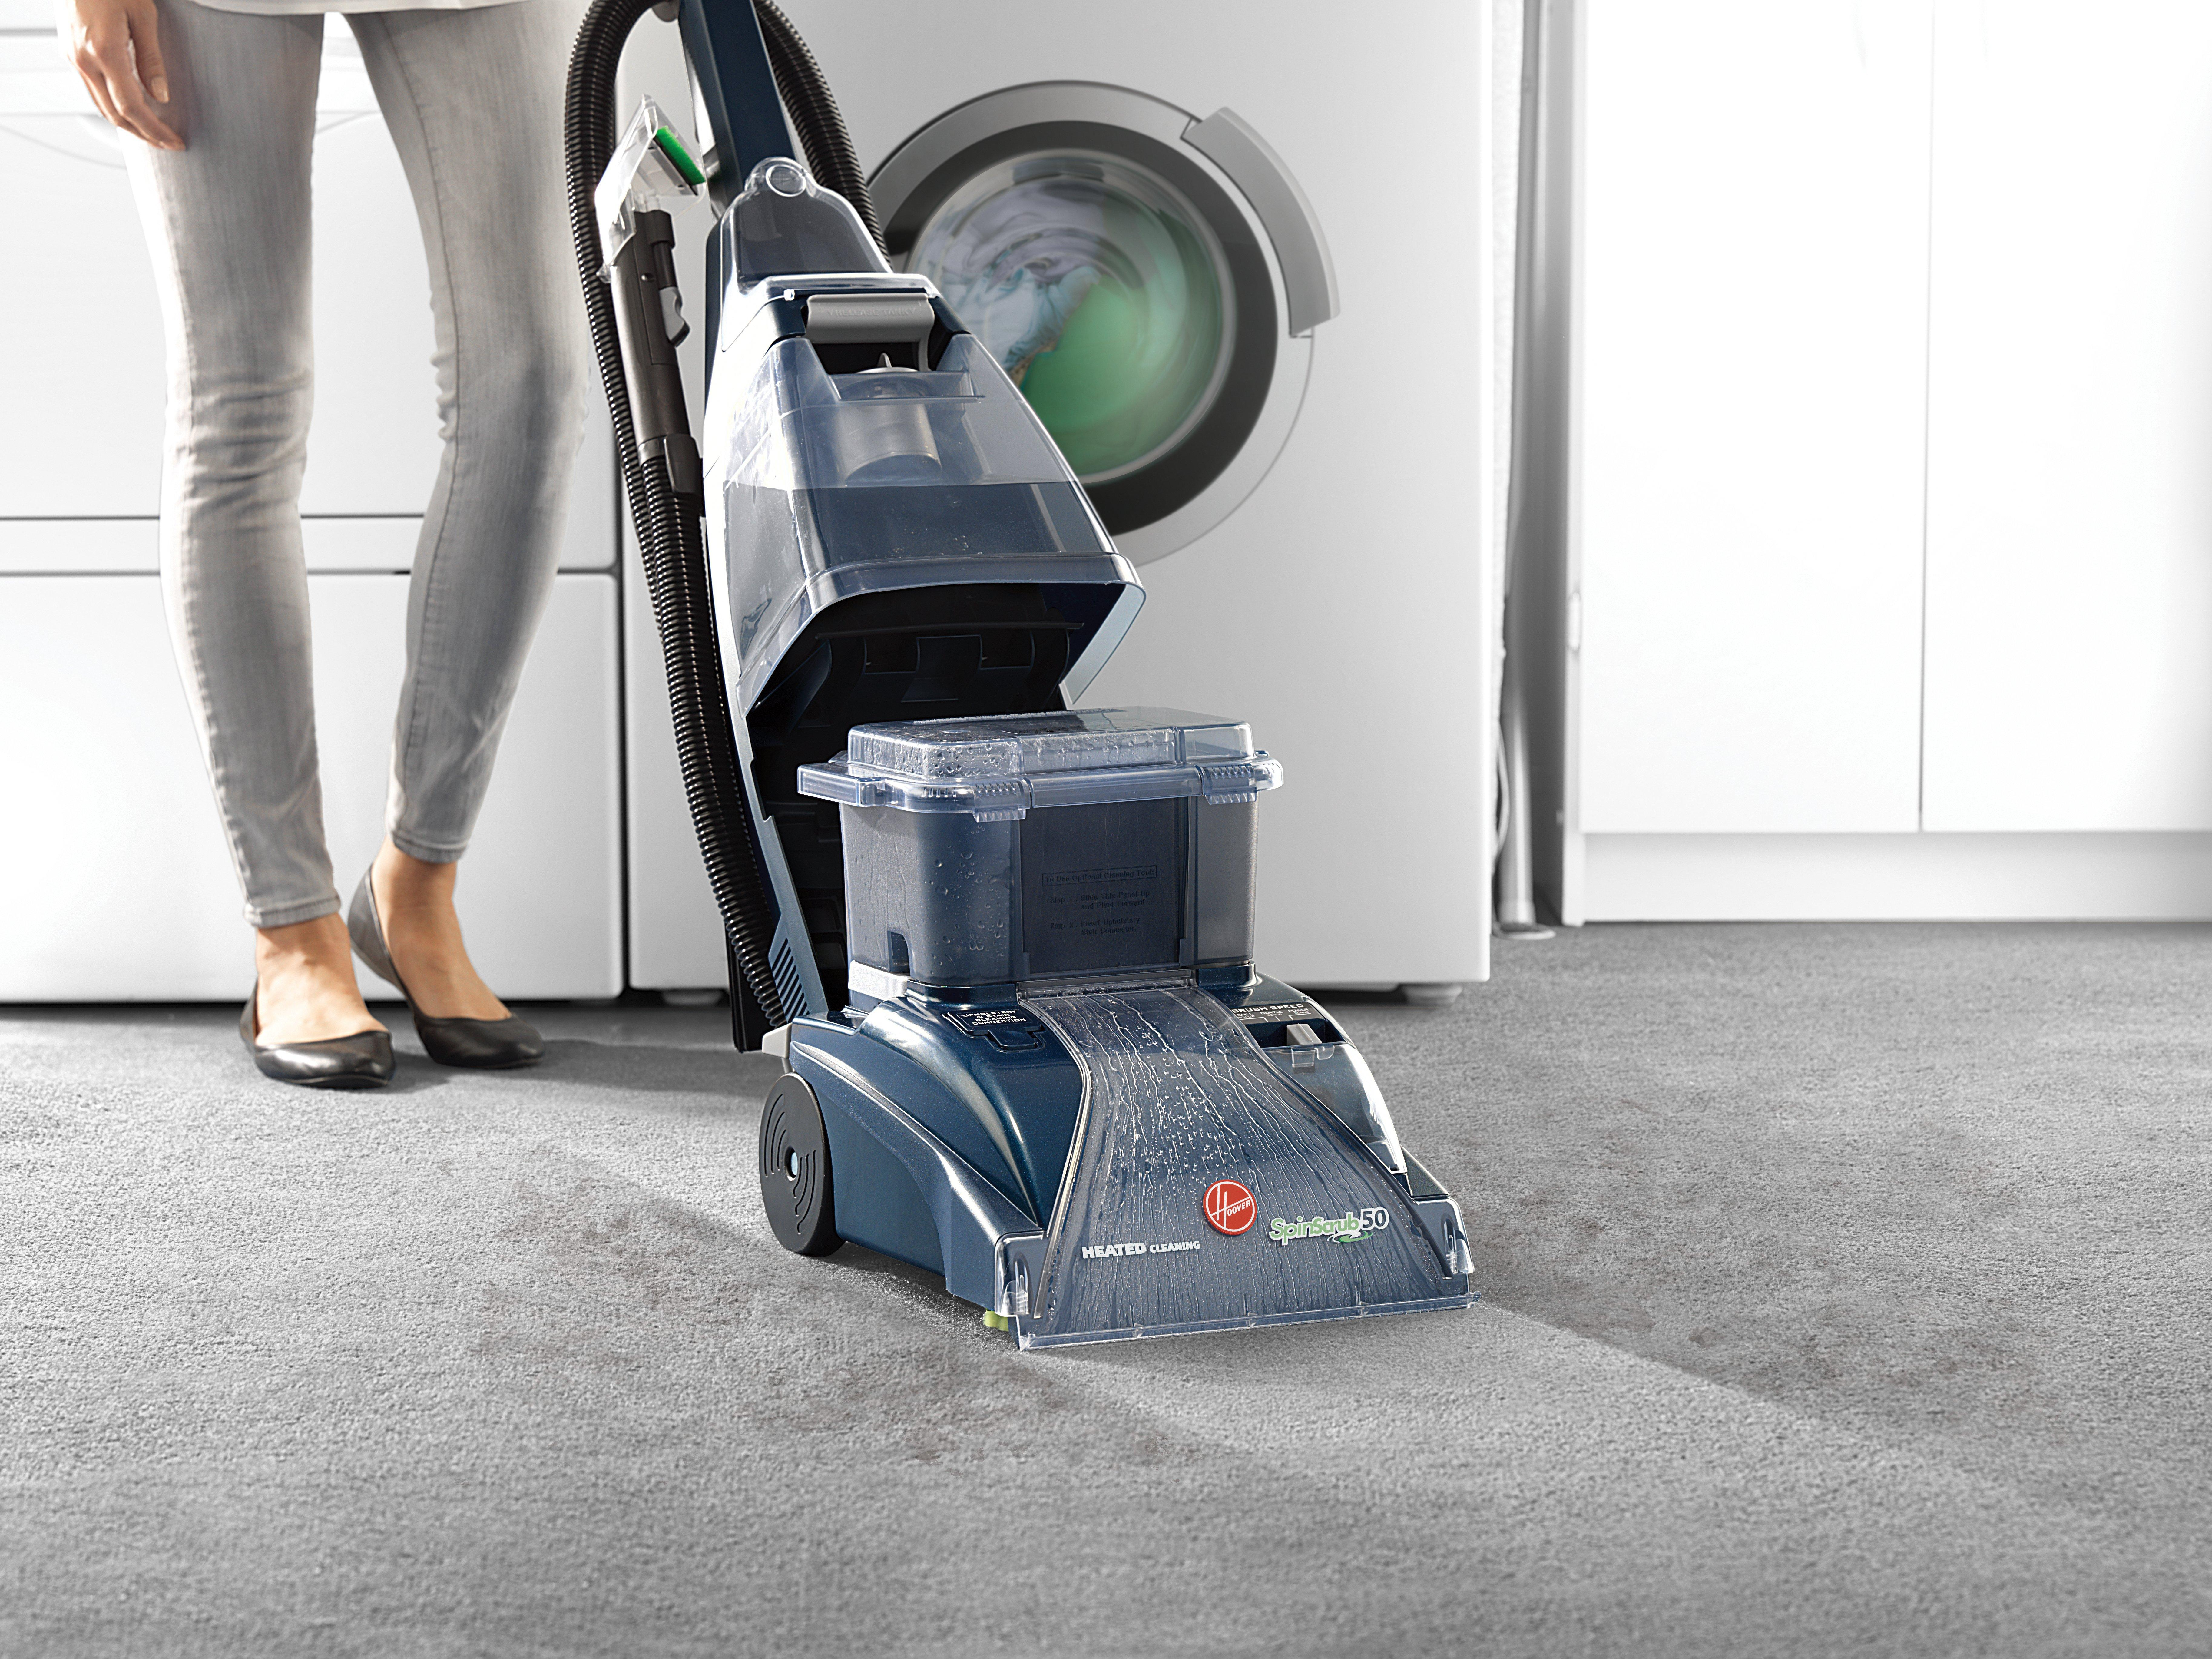 Hoover Steamvac Spinscrub With Cleansurge Carpet Cleanerwasher